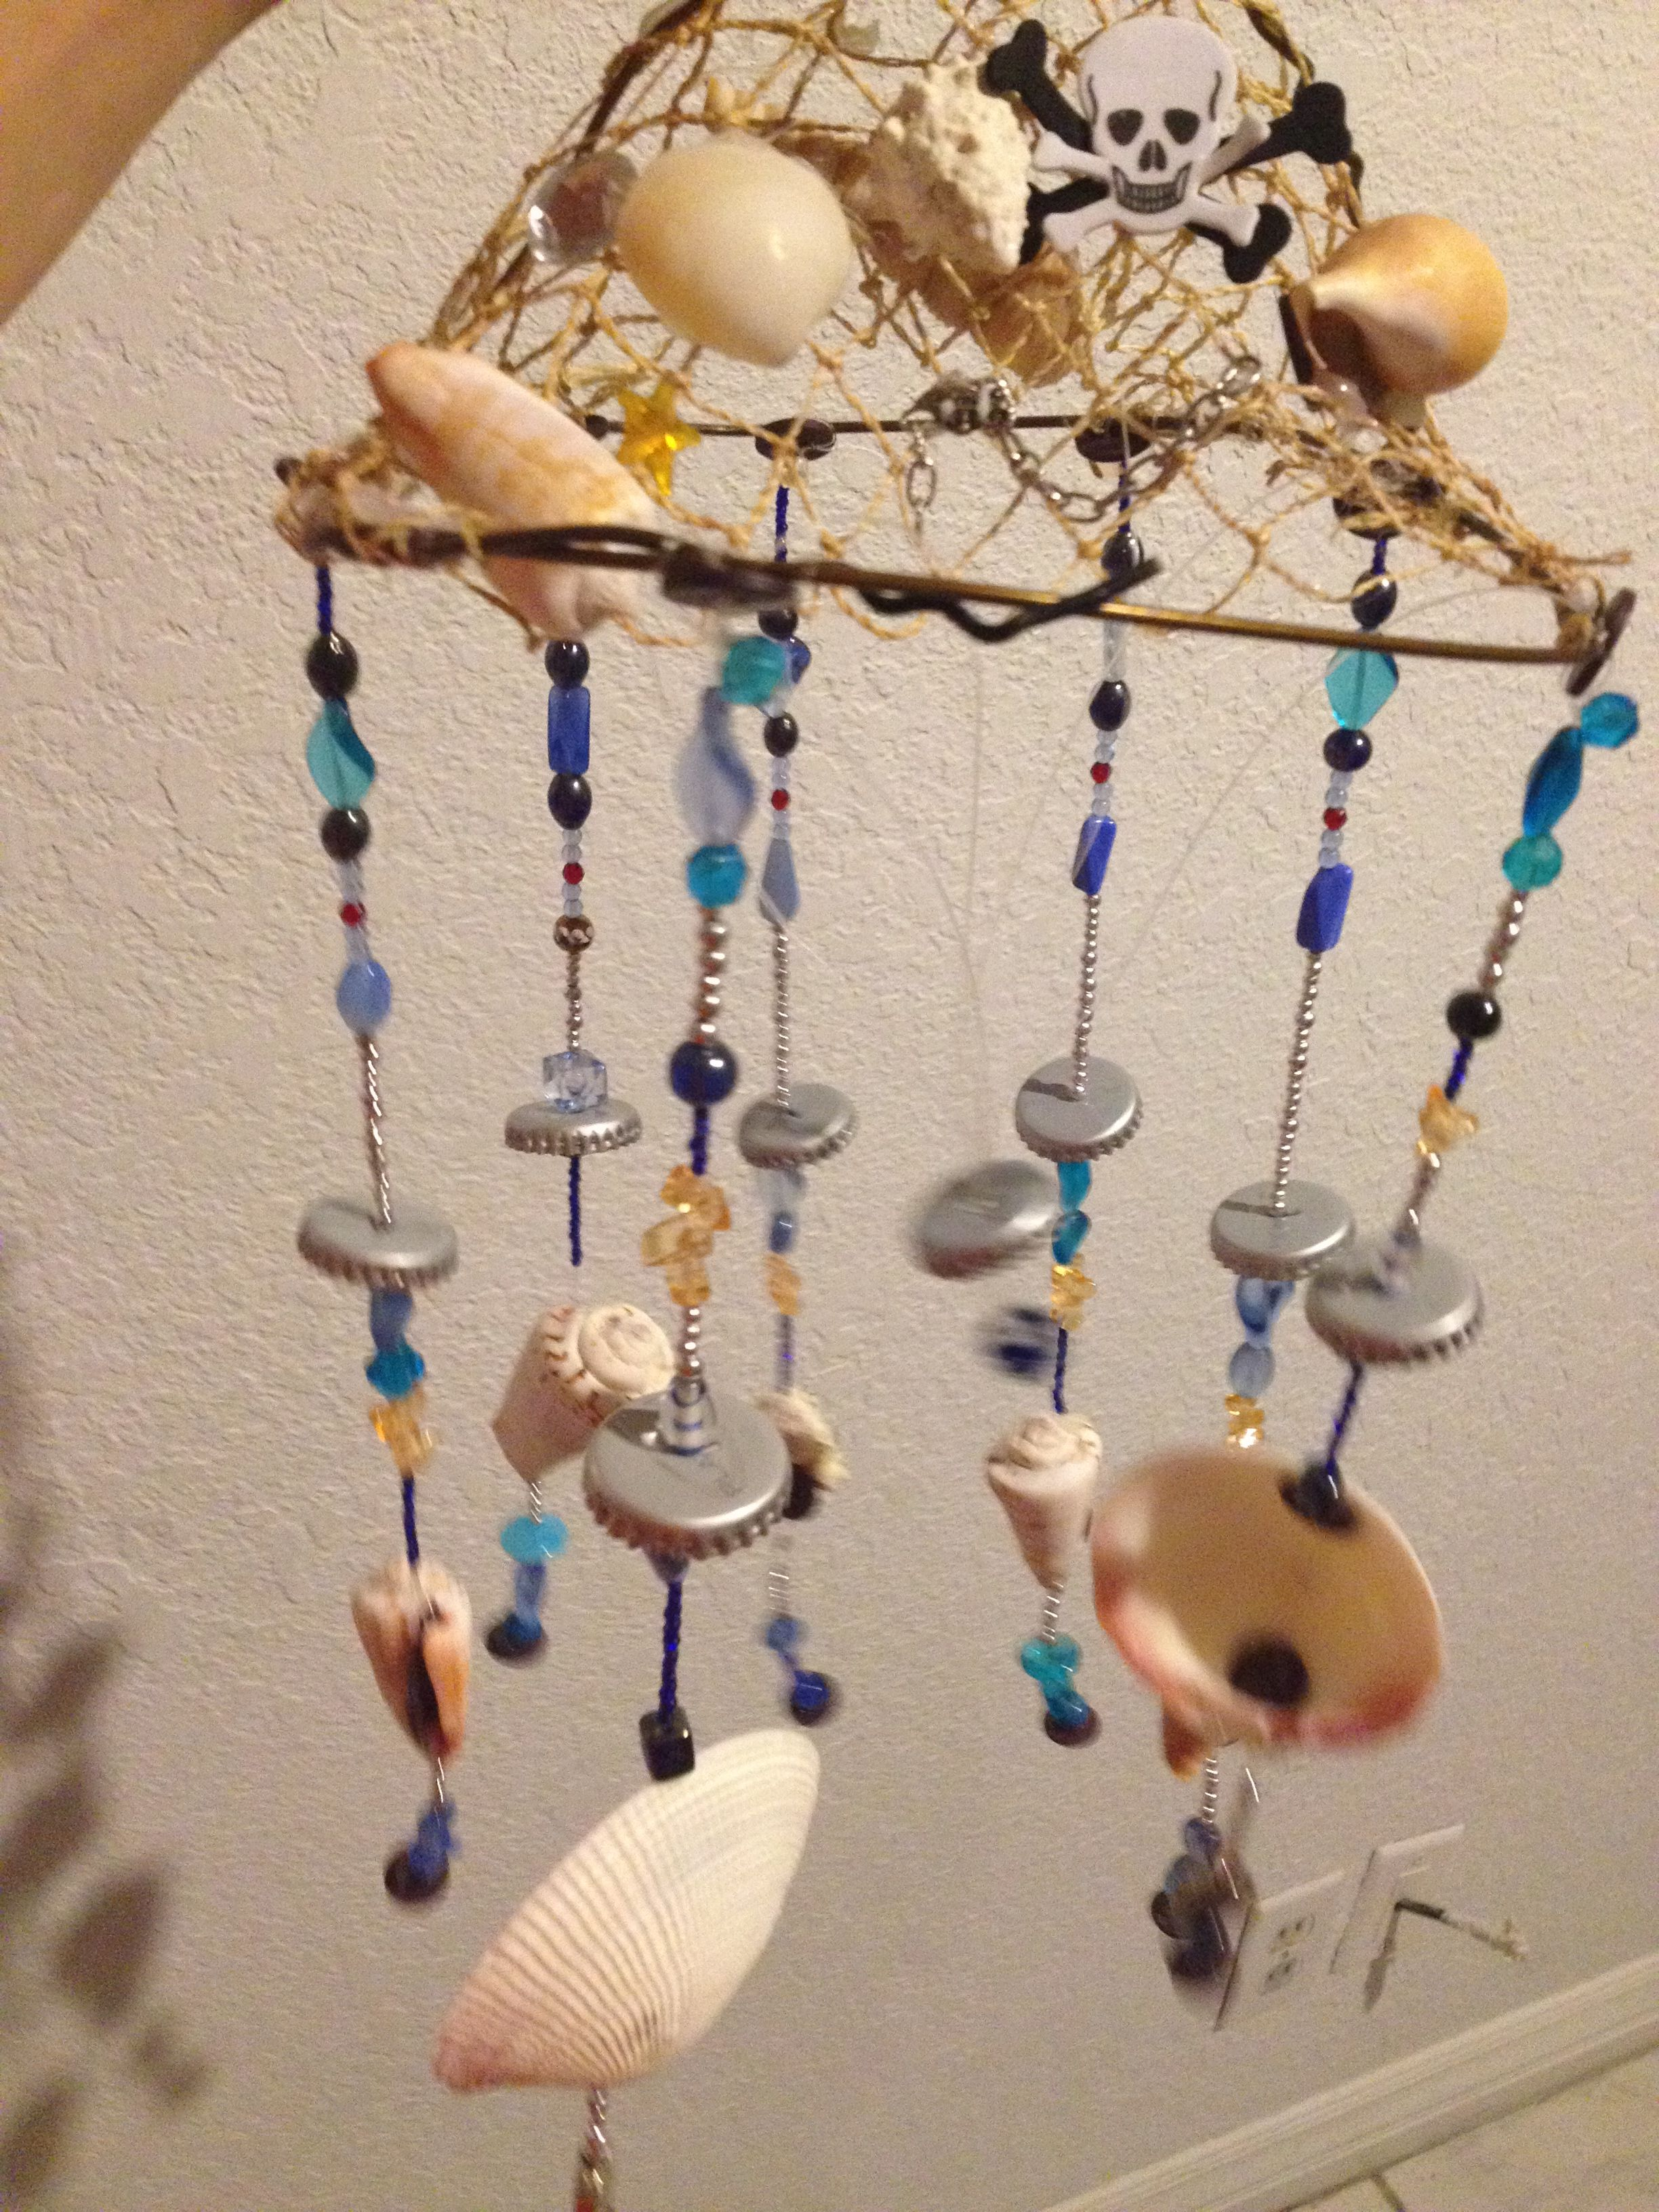 Home Made Wind Chime (Diy)